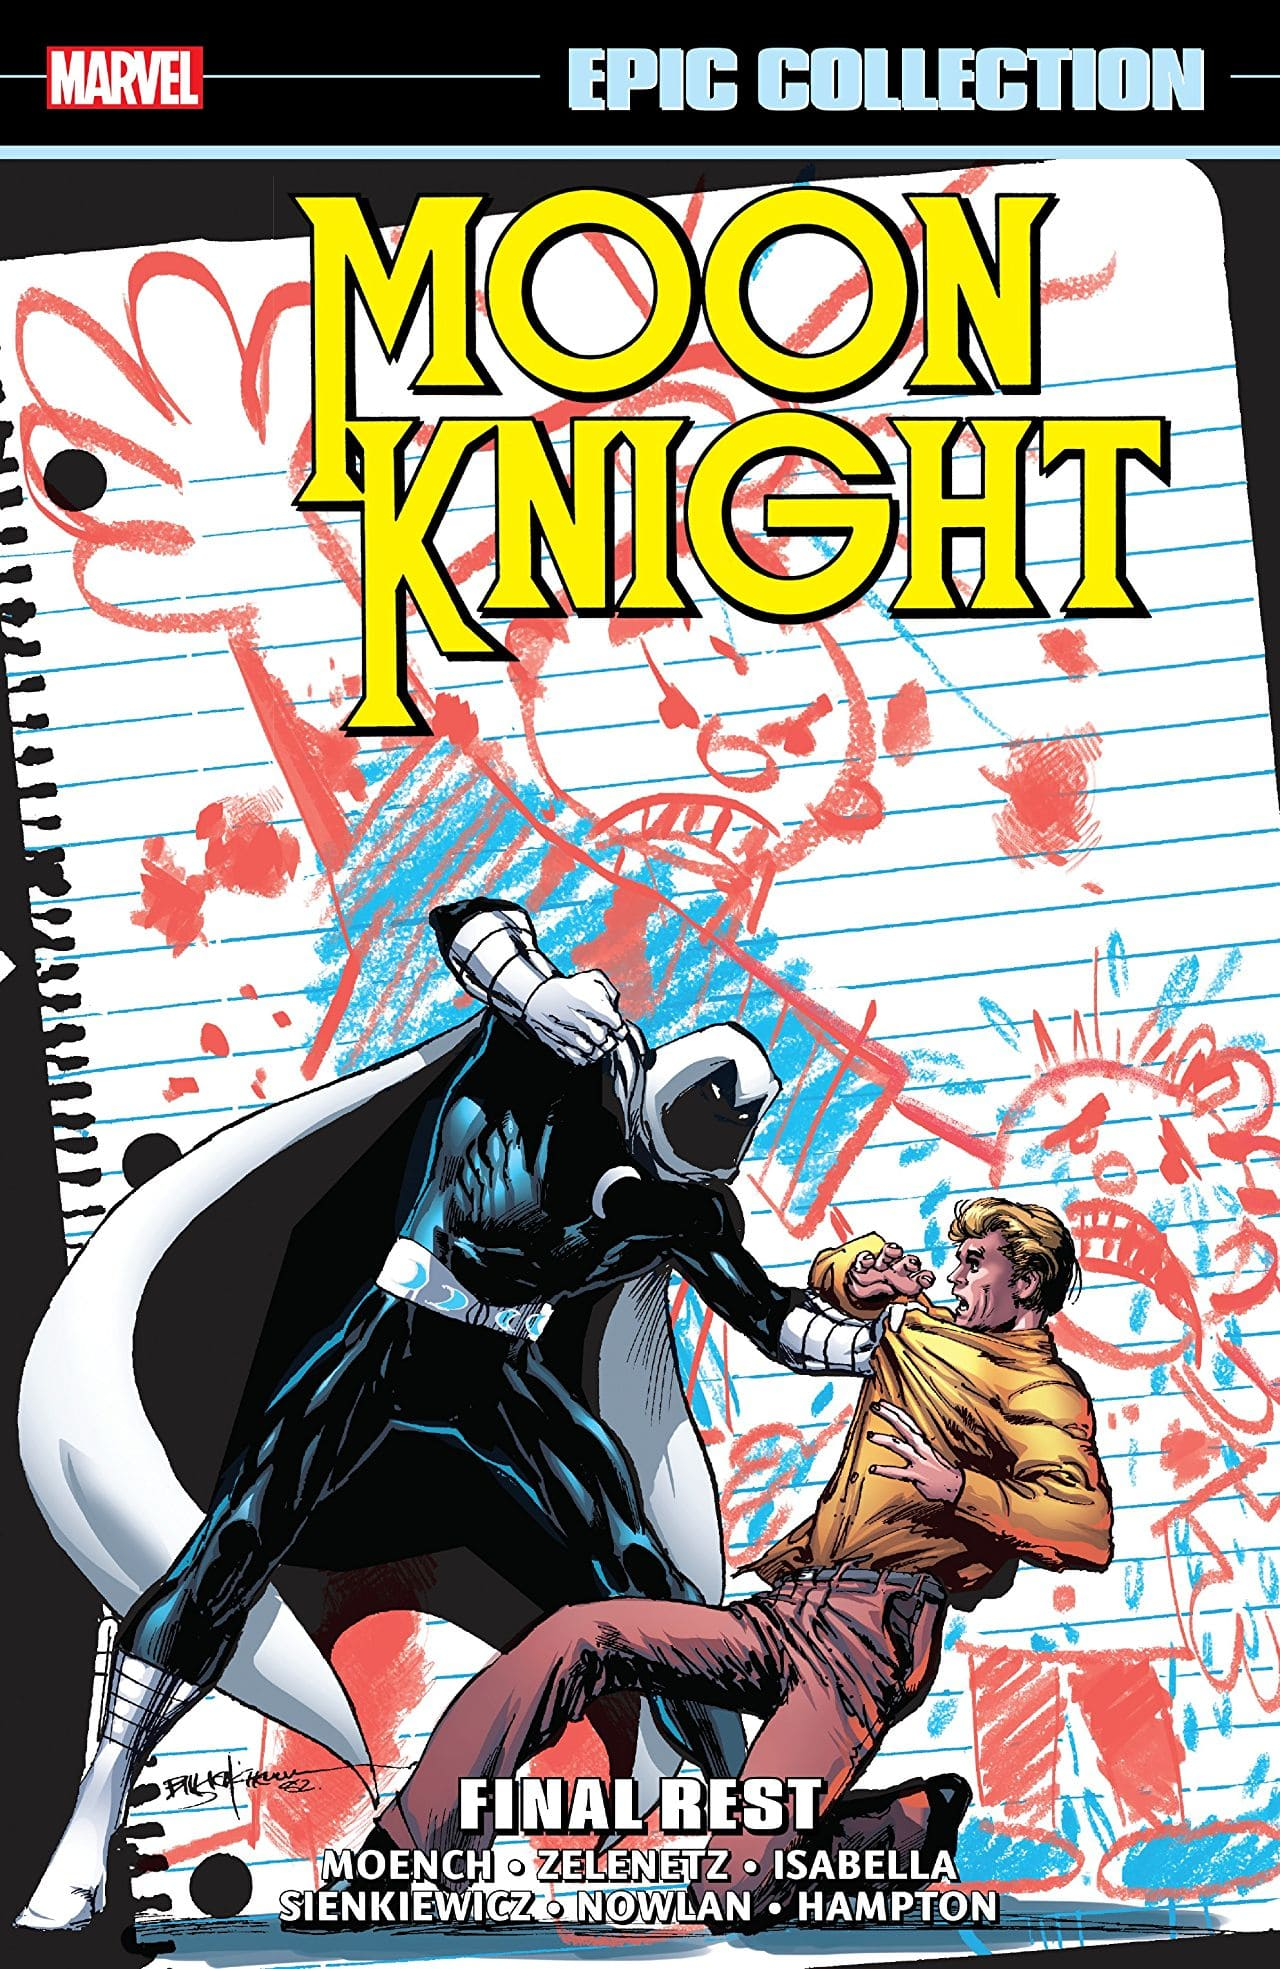 Moon Knight Epic Collection: Final Rest Review